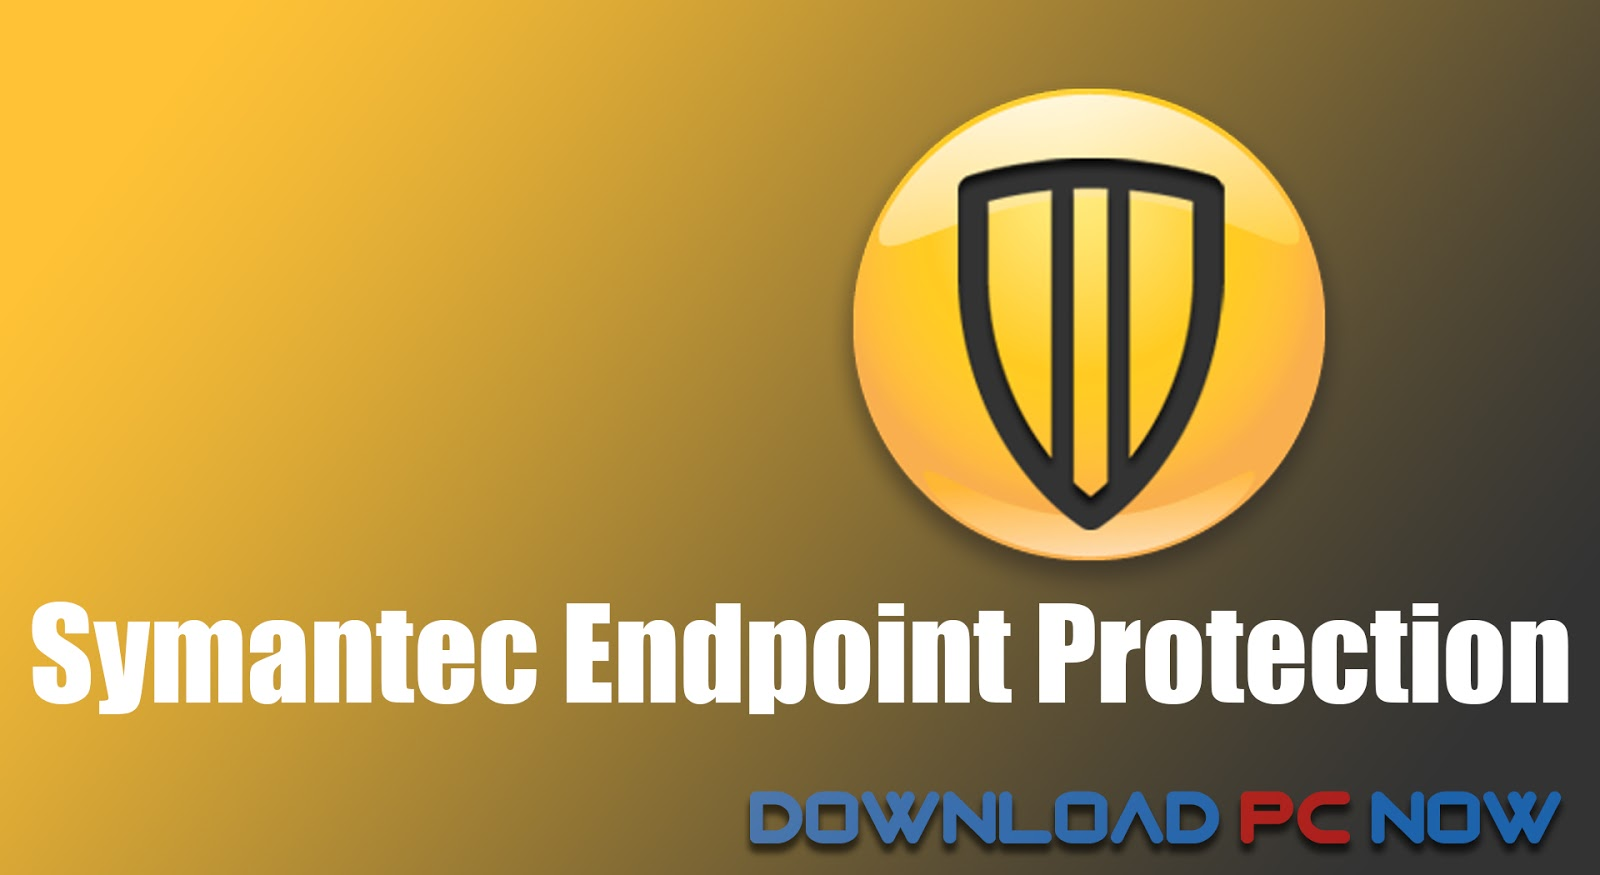 Symantec Endpoint Protection 14 2 1015 100 x86x64 - Download